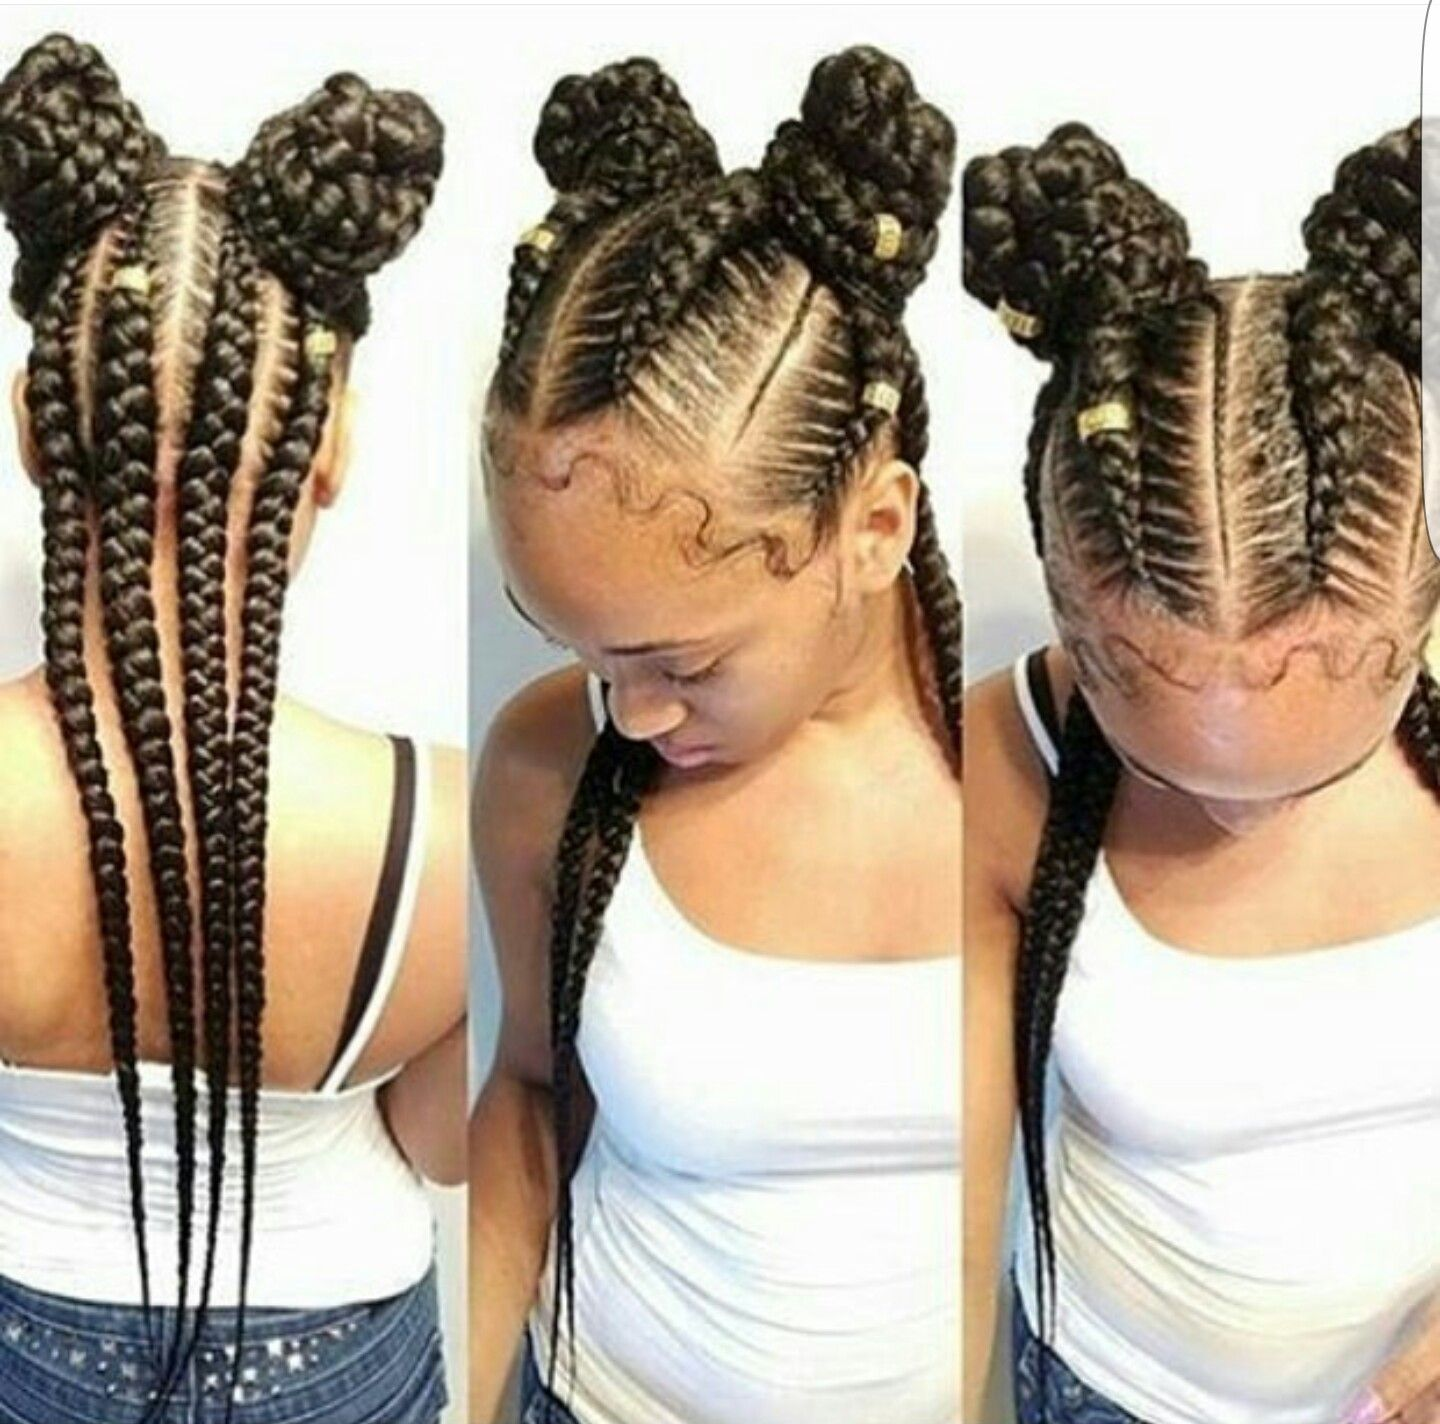 braids for little black girl hair style joniwhite219 hδir hair styles curly hair 1389 | ca531c7a2dbac6cf59657fd73eef78e4